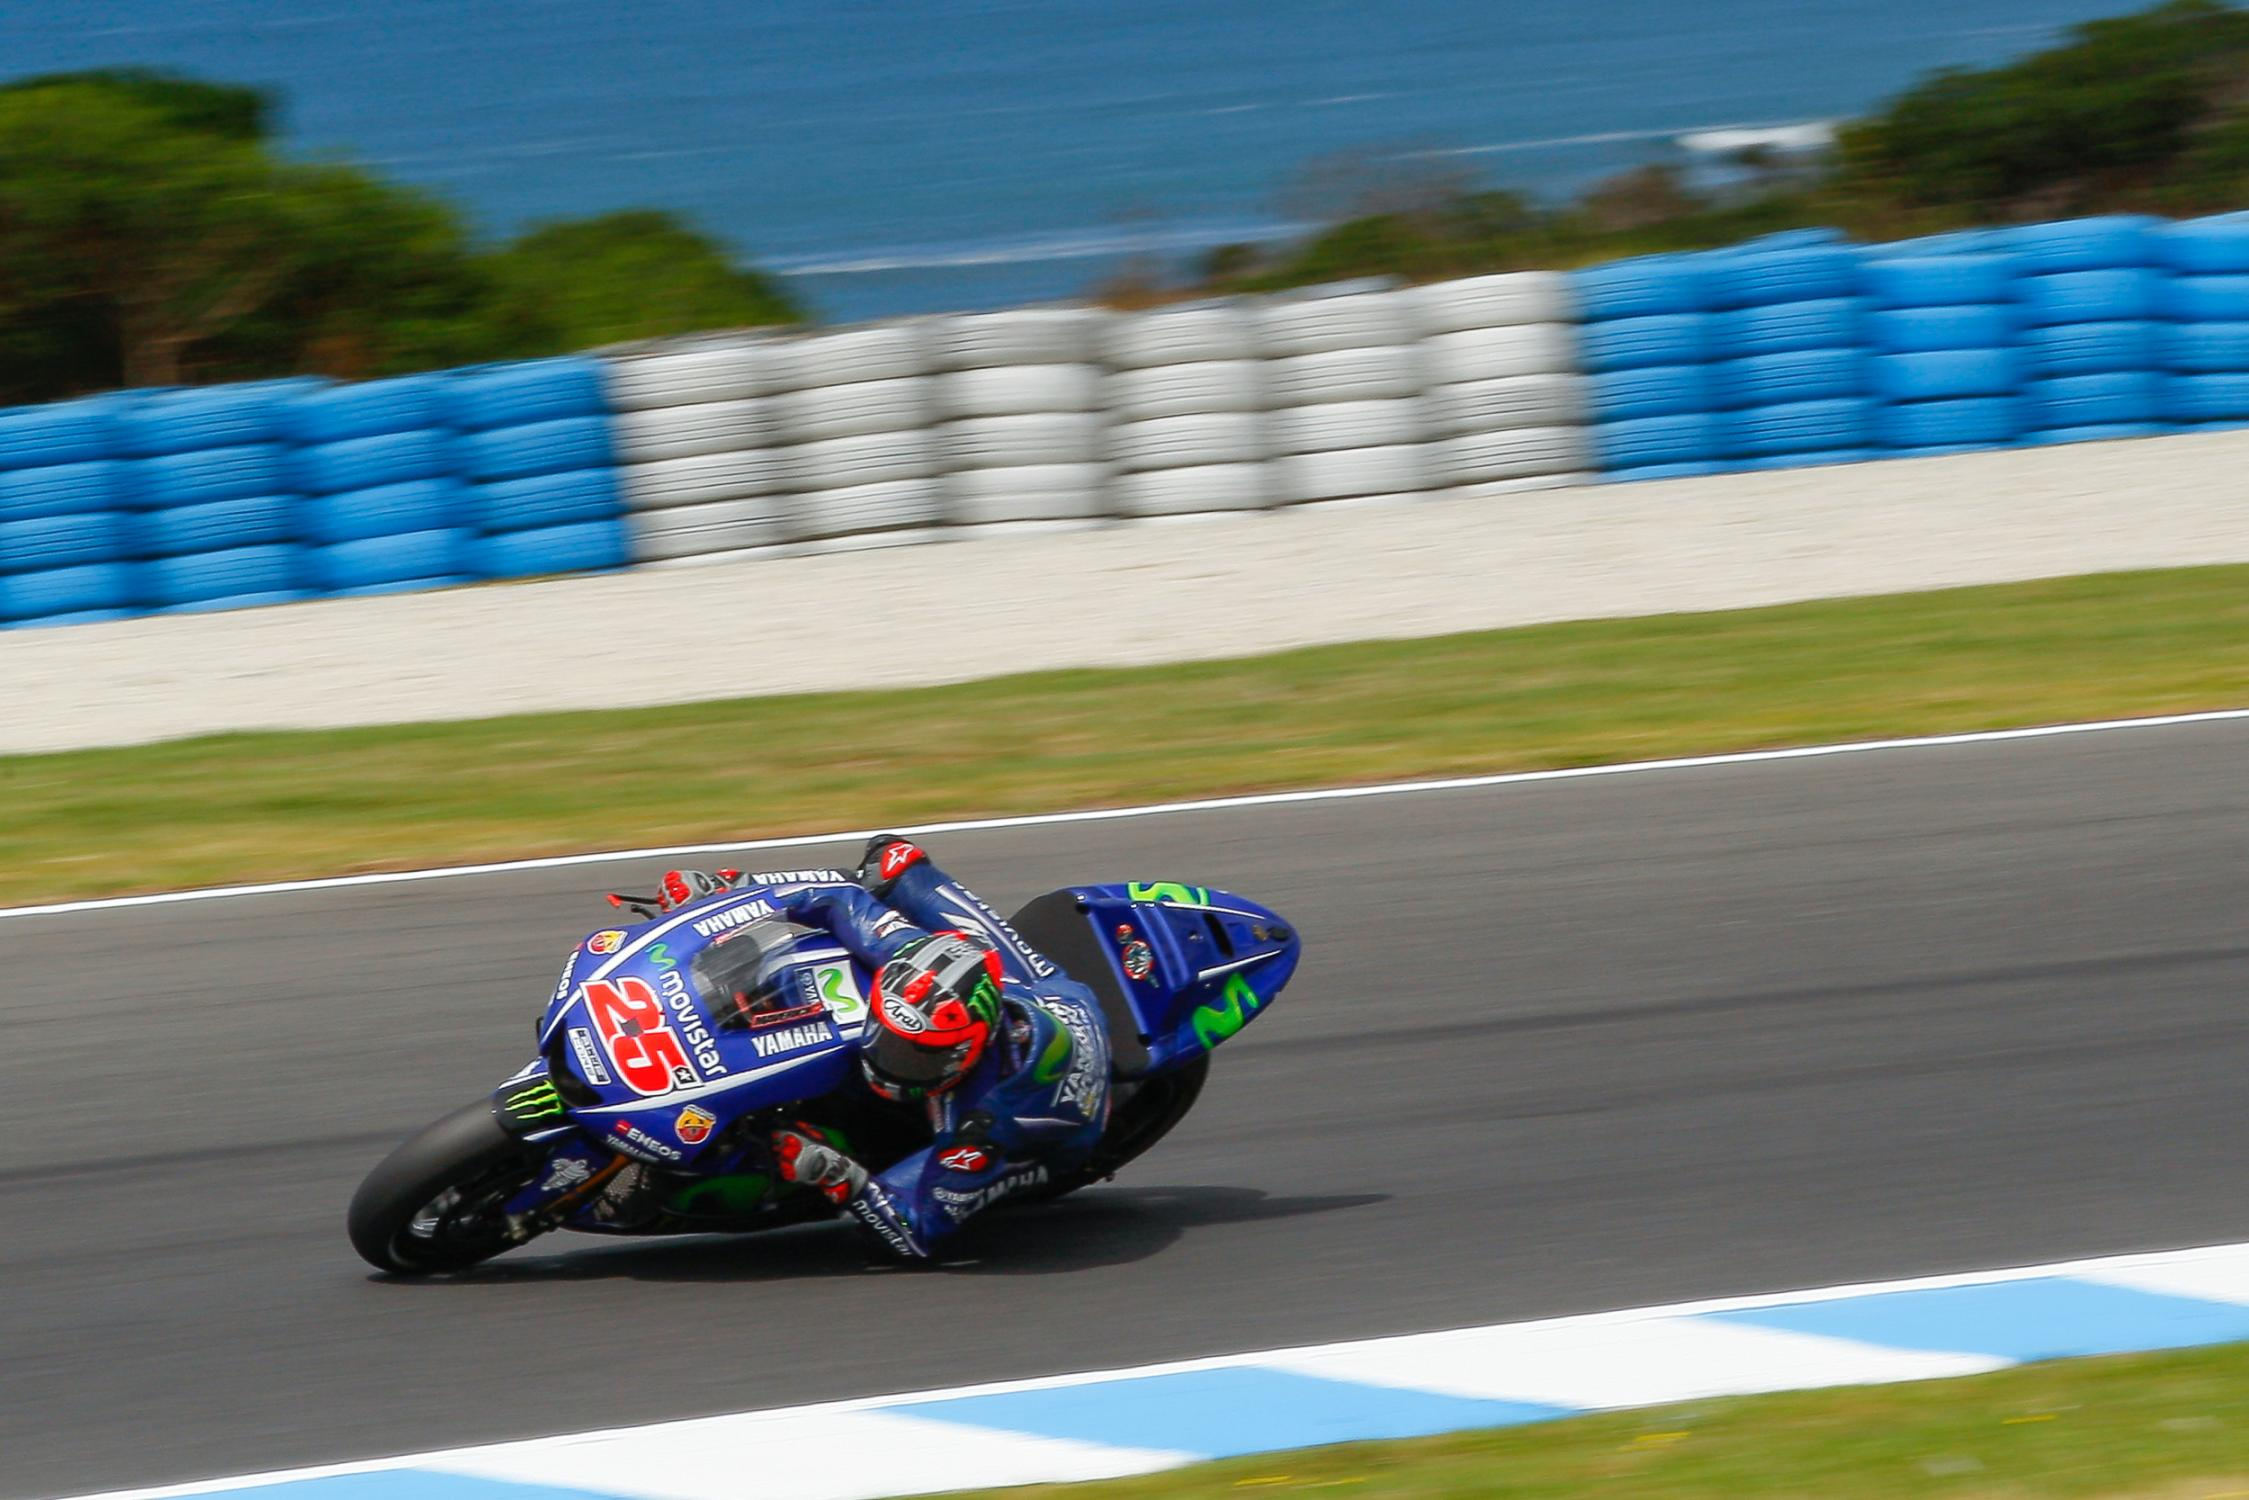 25 maverick vinales esp 2017 action australia motogp phillip island pre season test16557 test2017 action.gallery full top fullscreen